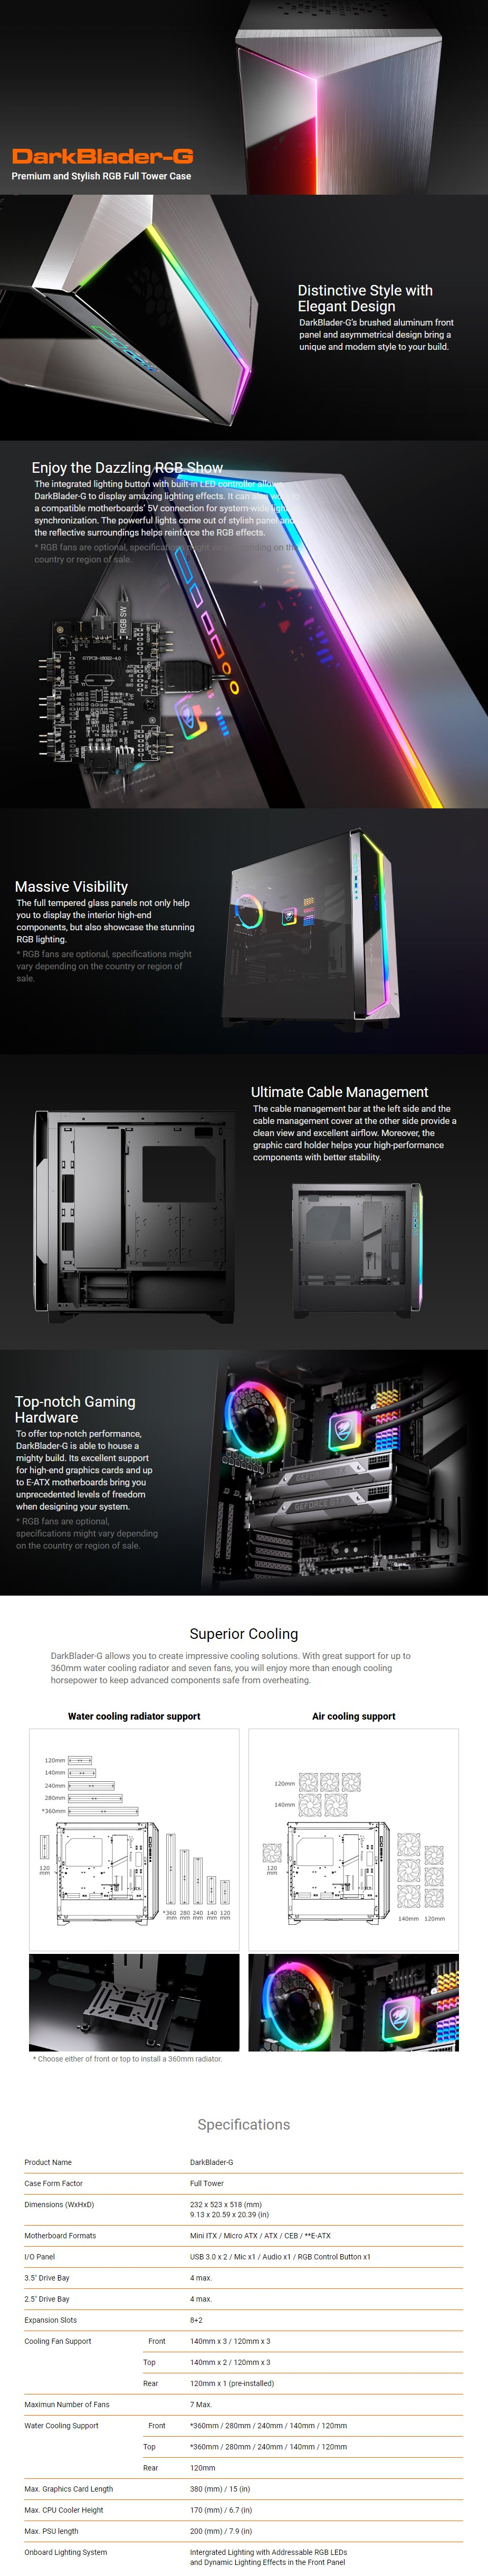 Cougar DarkBlader-G RGB Tempered Glass E-ATX Full-Tower Case - Overview 1